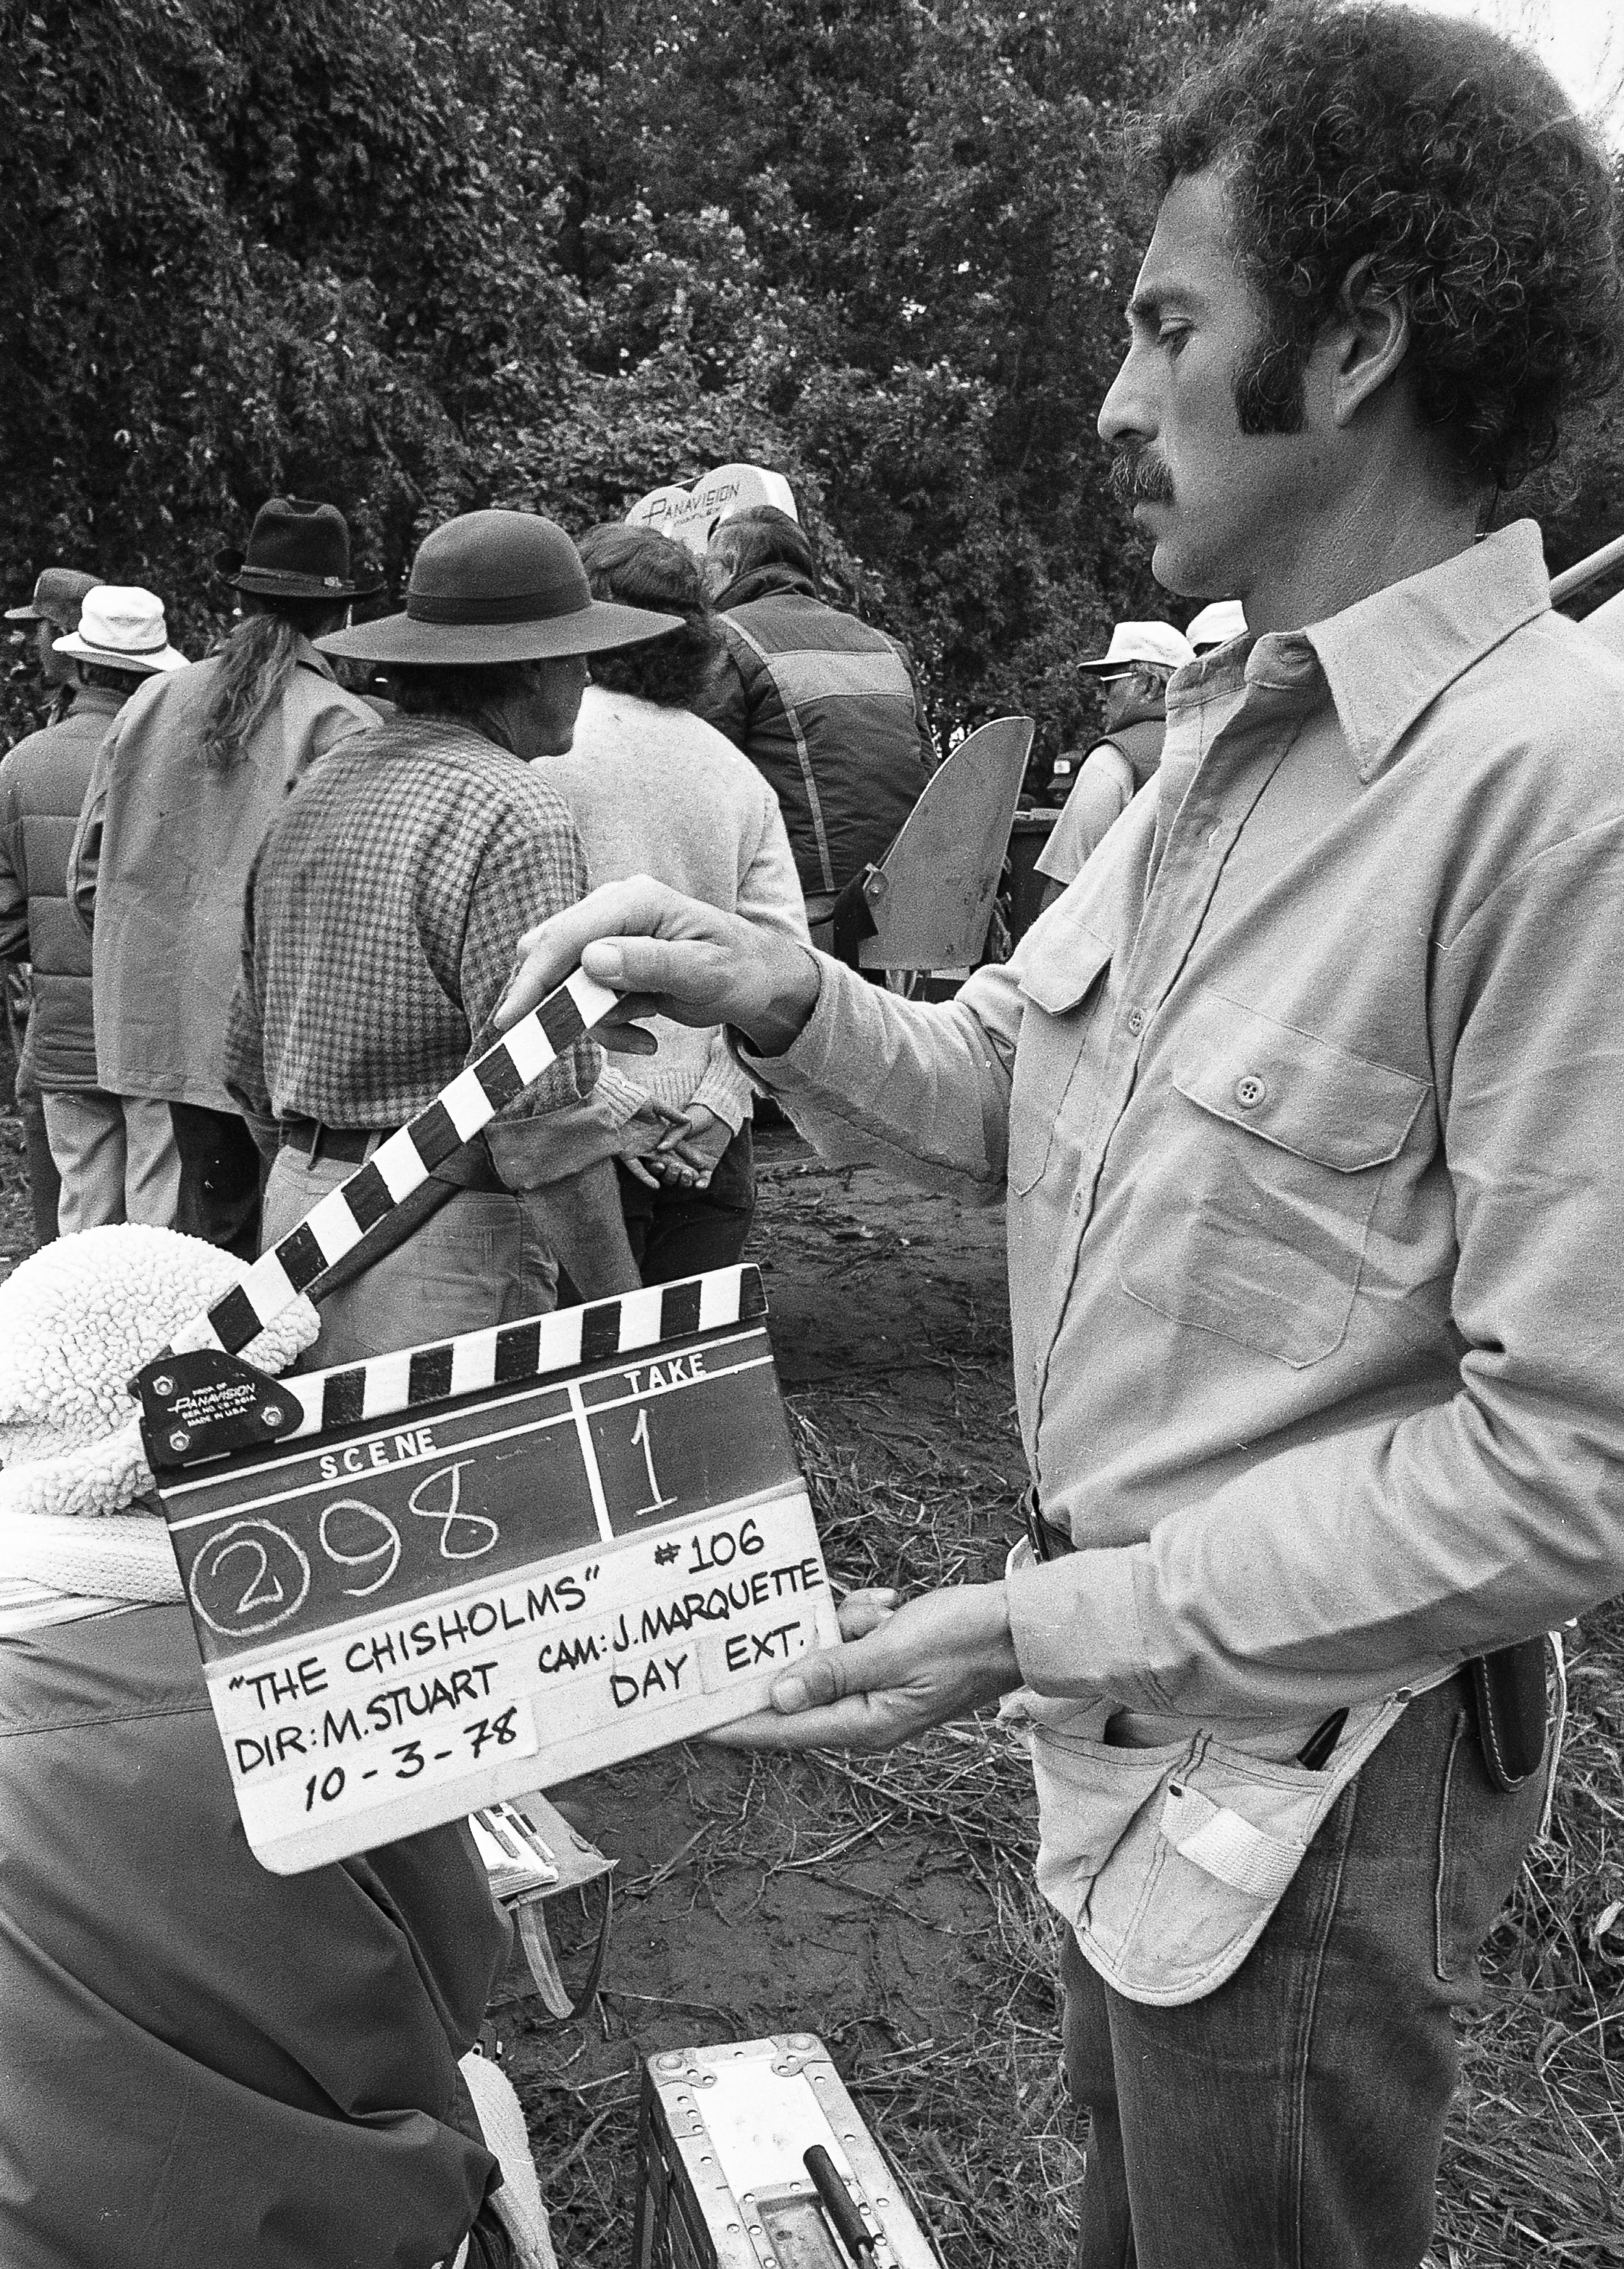 """Filming of the television mini series """"The Chisholms"""" at New Salem State Historic Site, October 2, 1978. File/Bill Hagen/The State Journal-Register"""